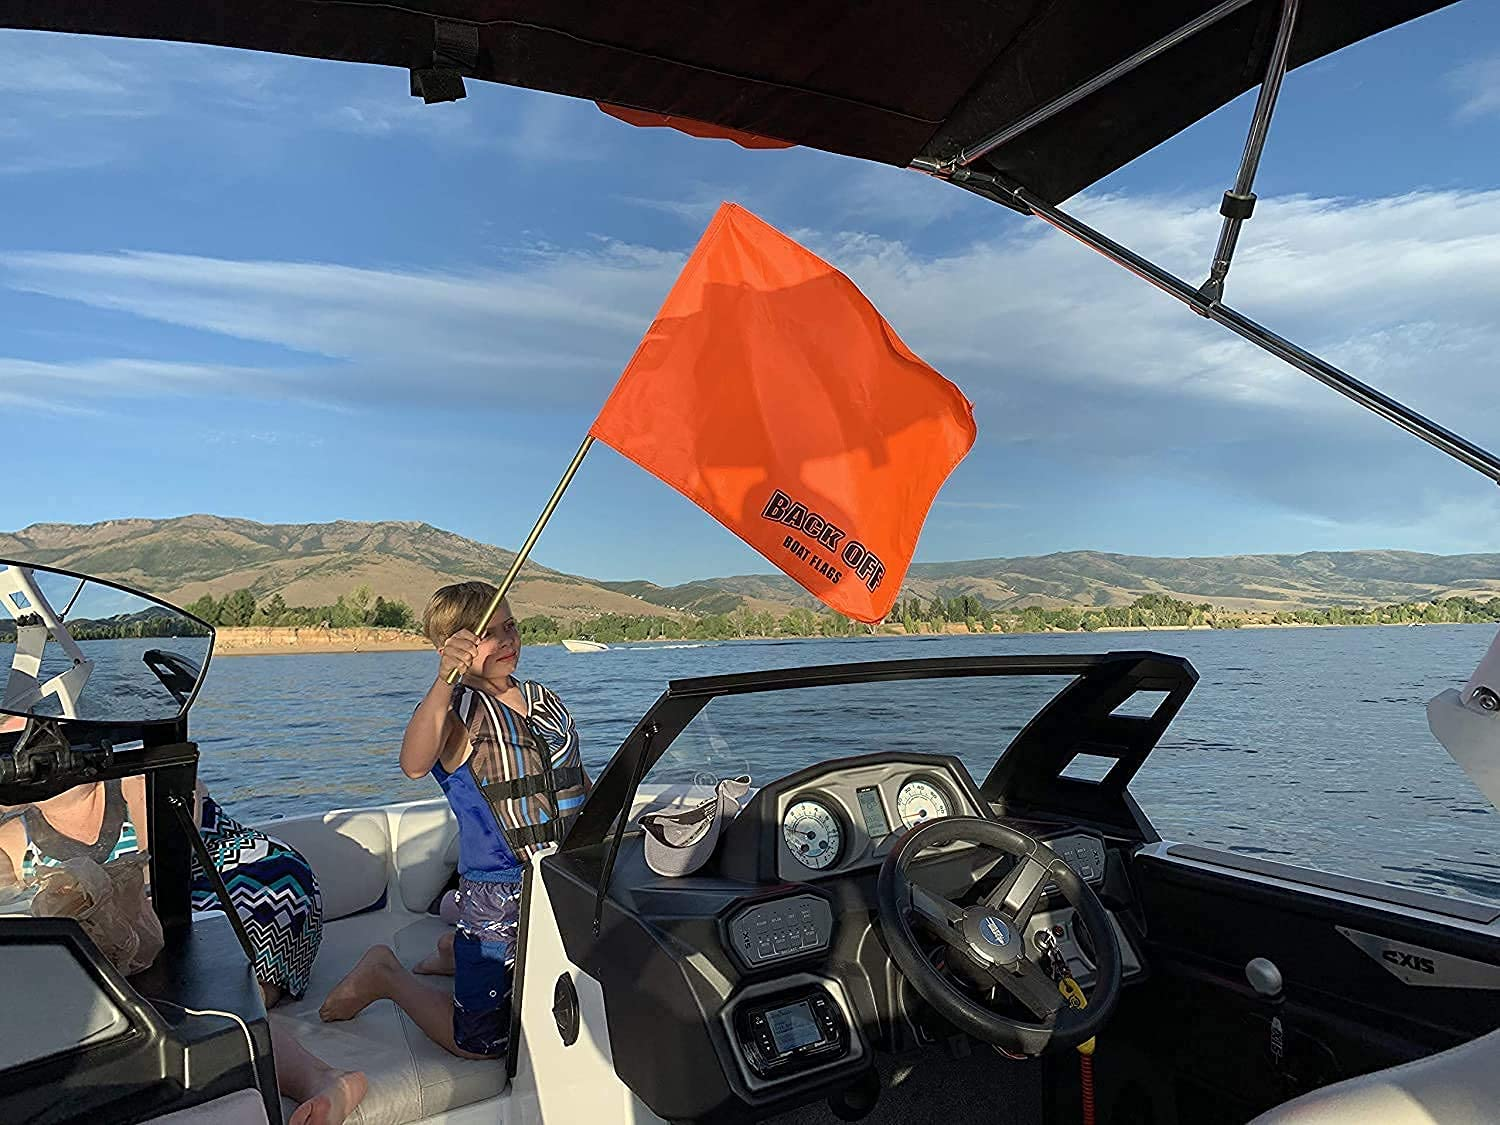 GIANT Orange Boating Safety Flag with Pole for Water Skis Wakeboarding and Tubing Universal Safety Skier Down Flag